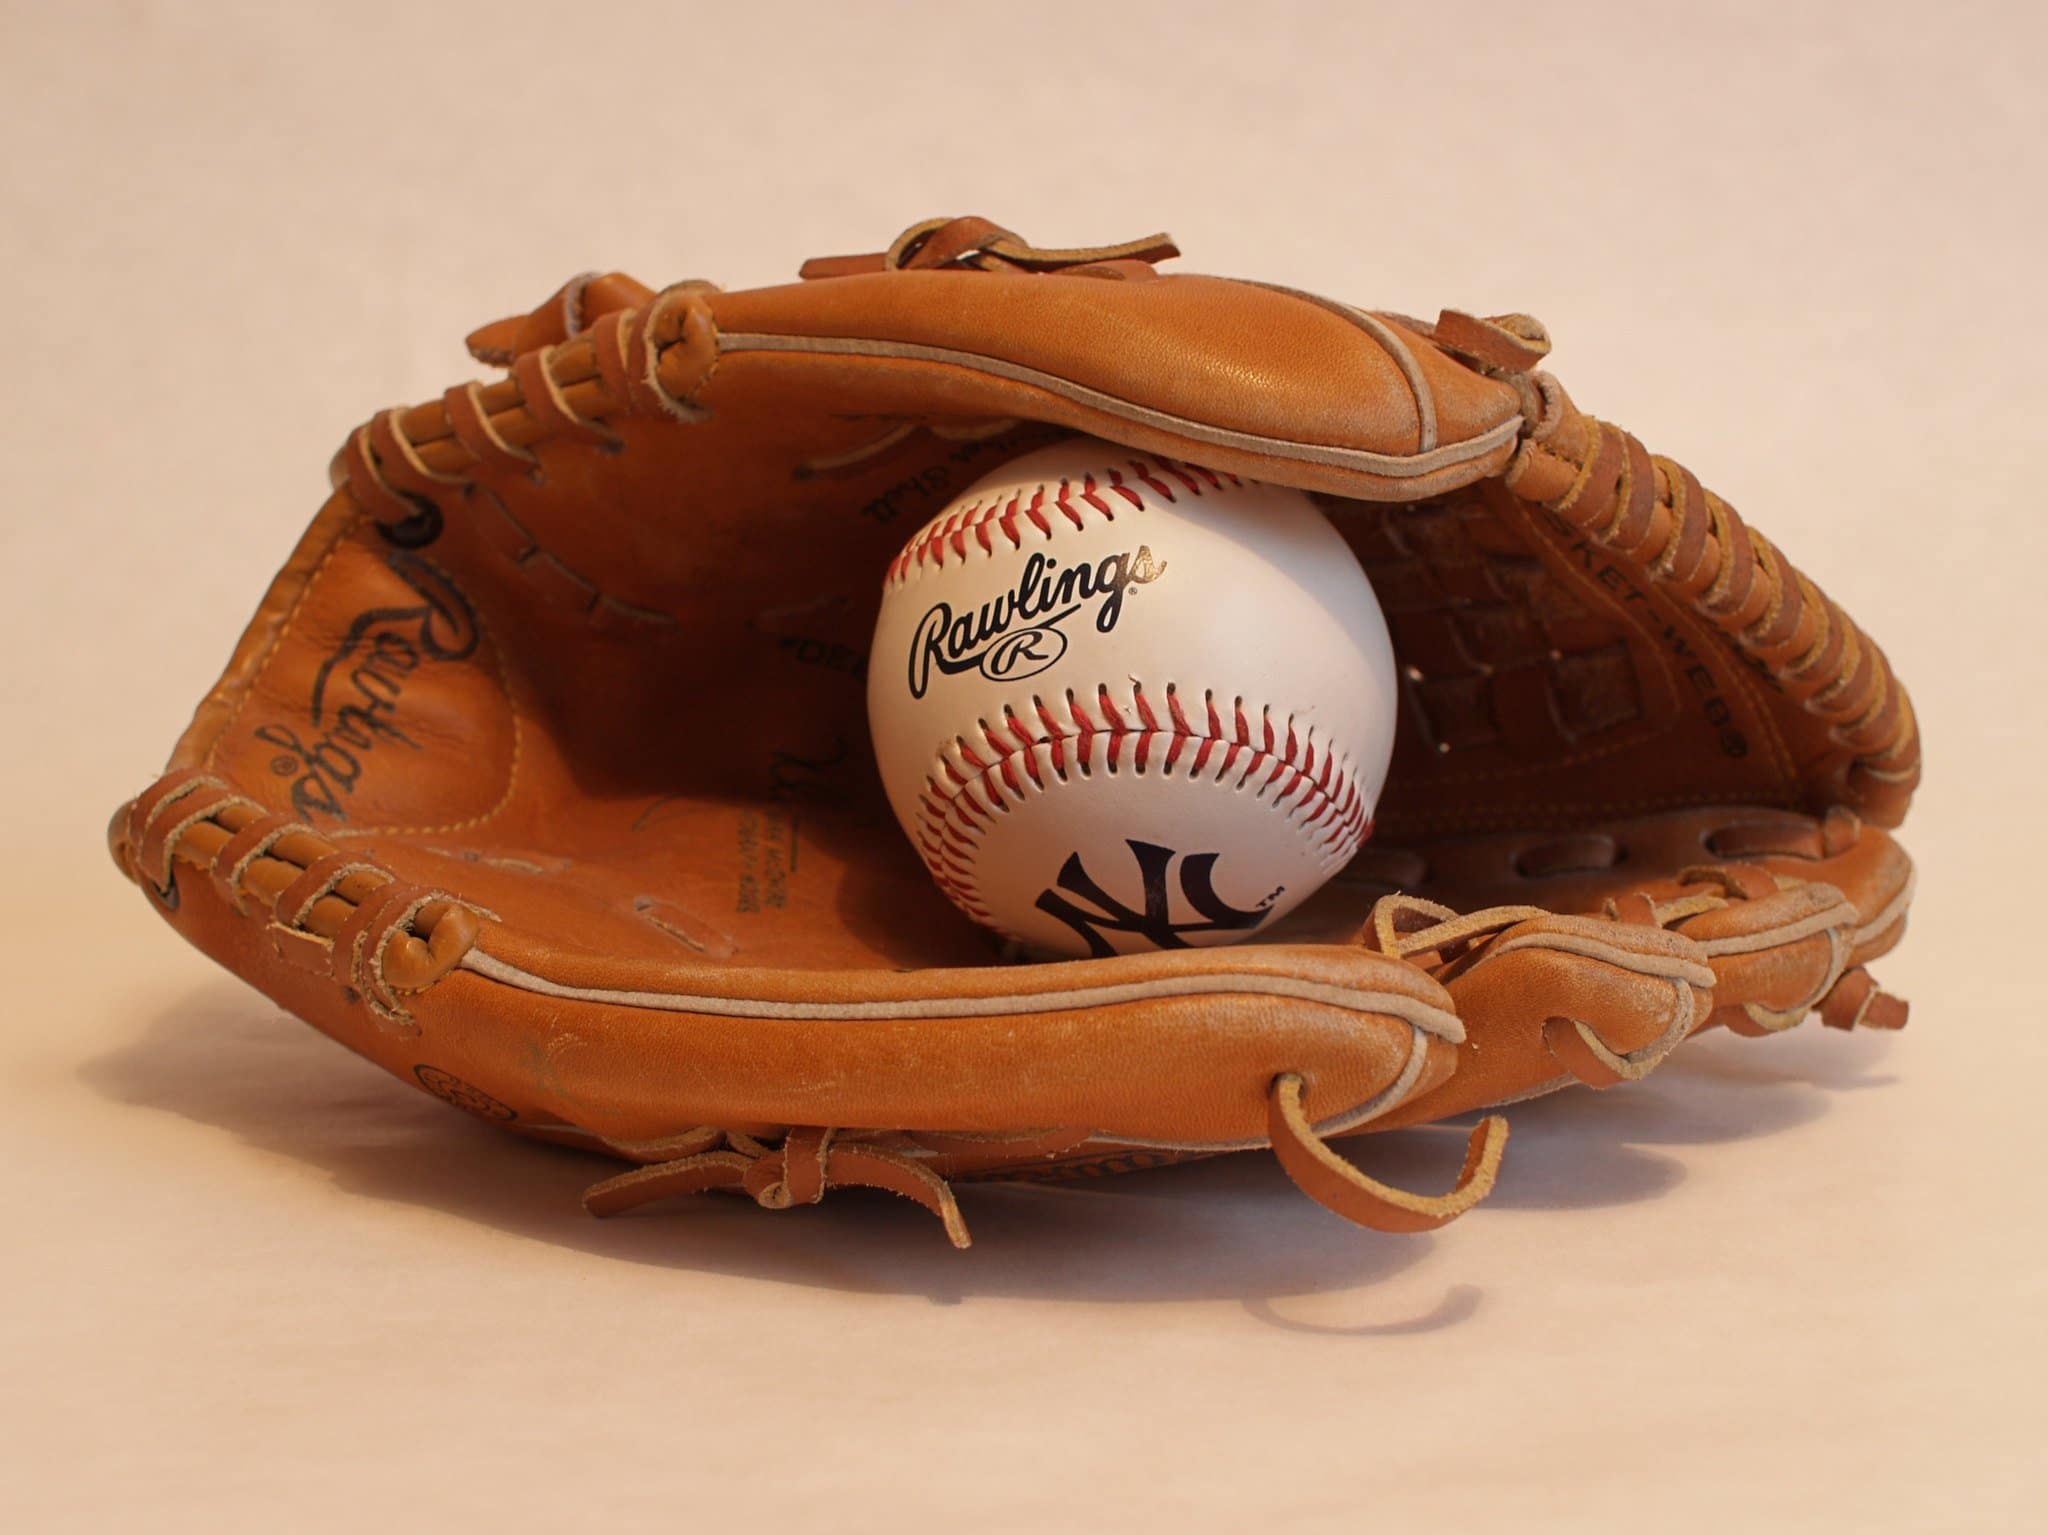 How to Use the Best Leather Conditioner for Baseball Gloves